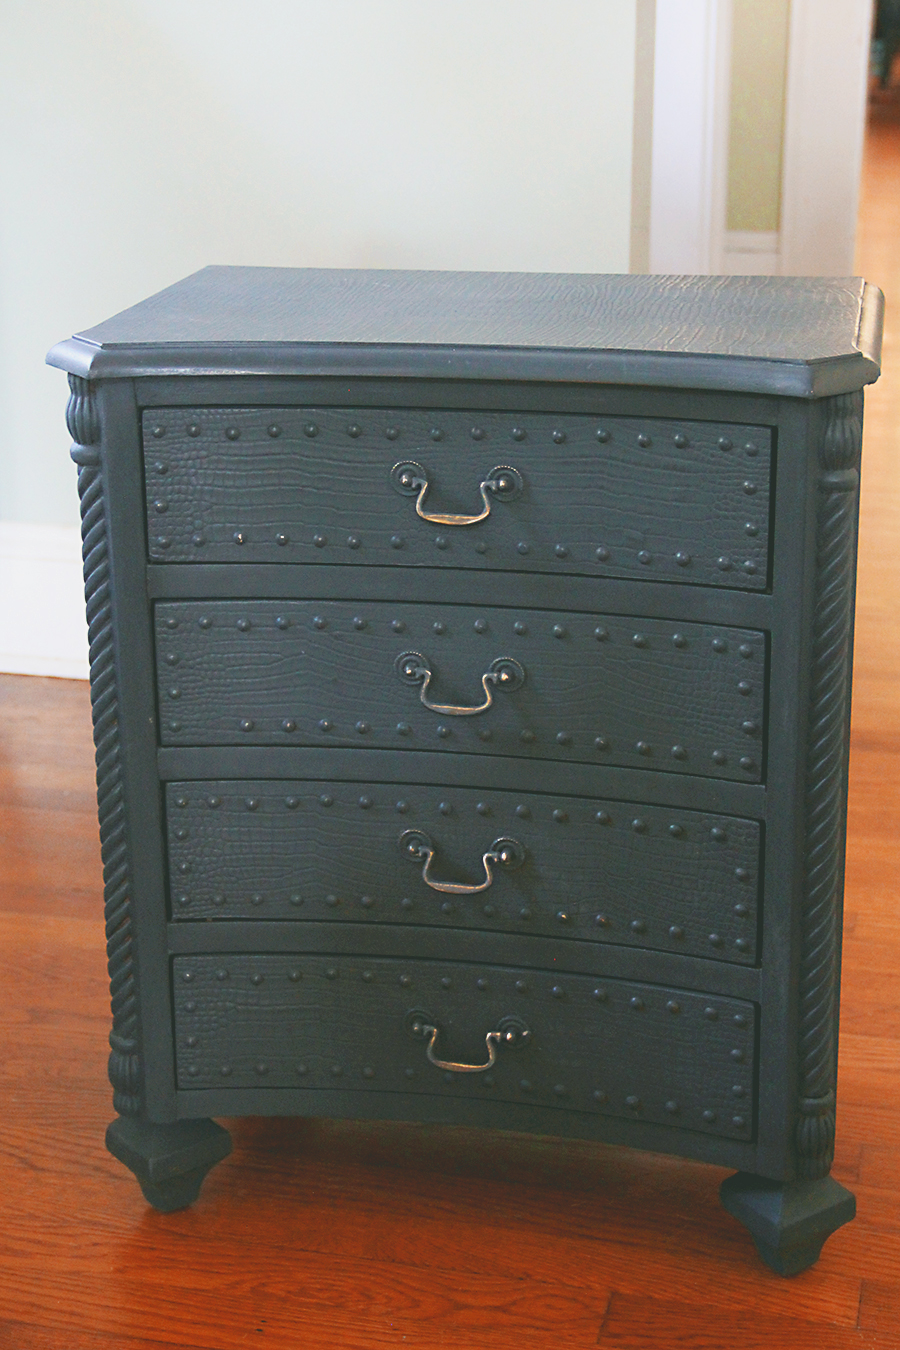 jo-torrijos-a-simpler-design-painted-furniture-19.jpeg